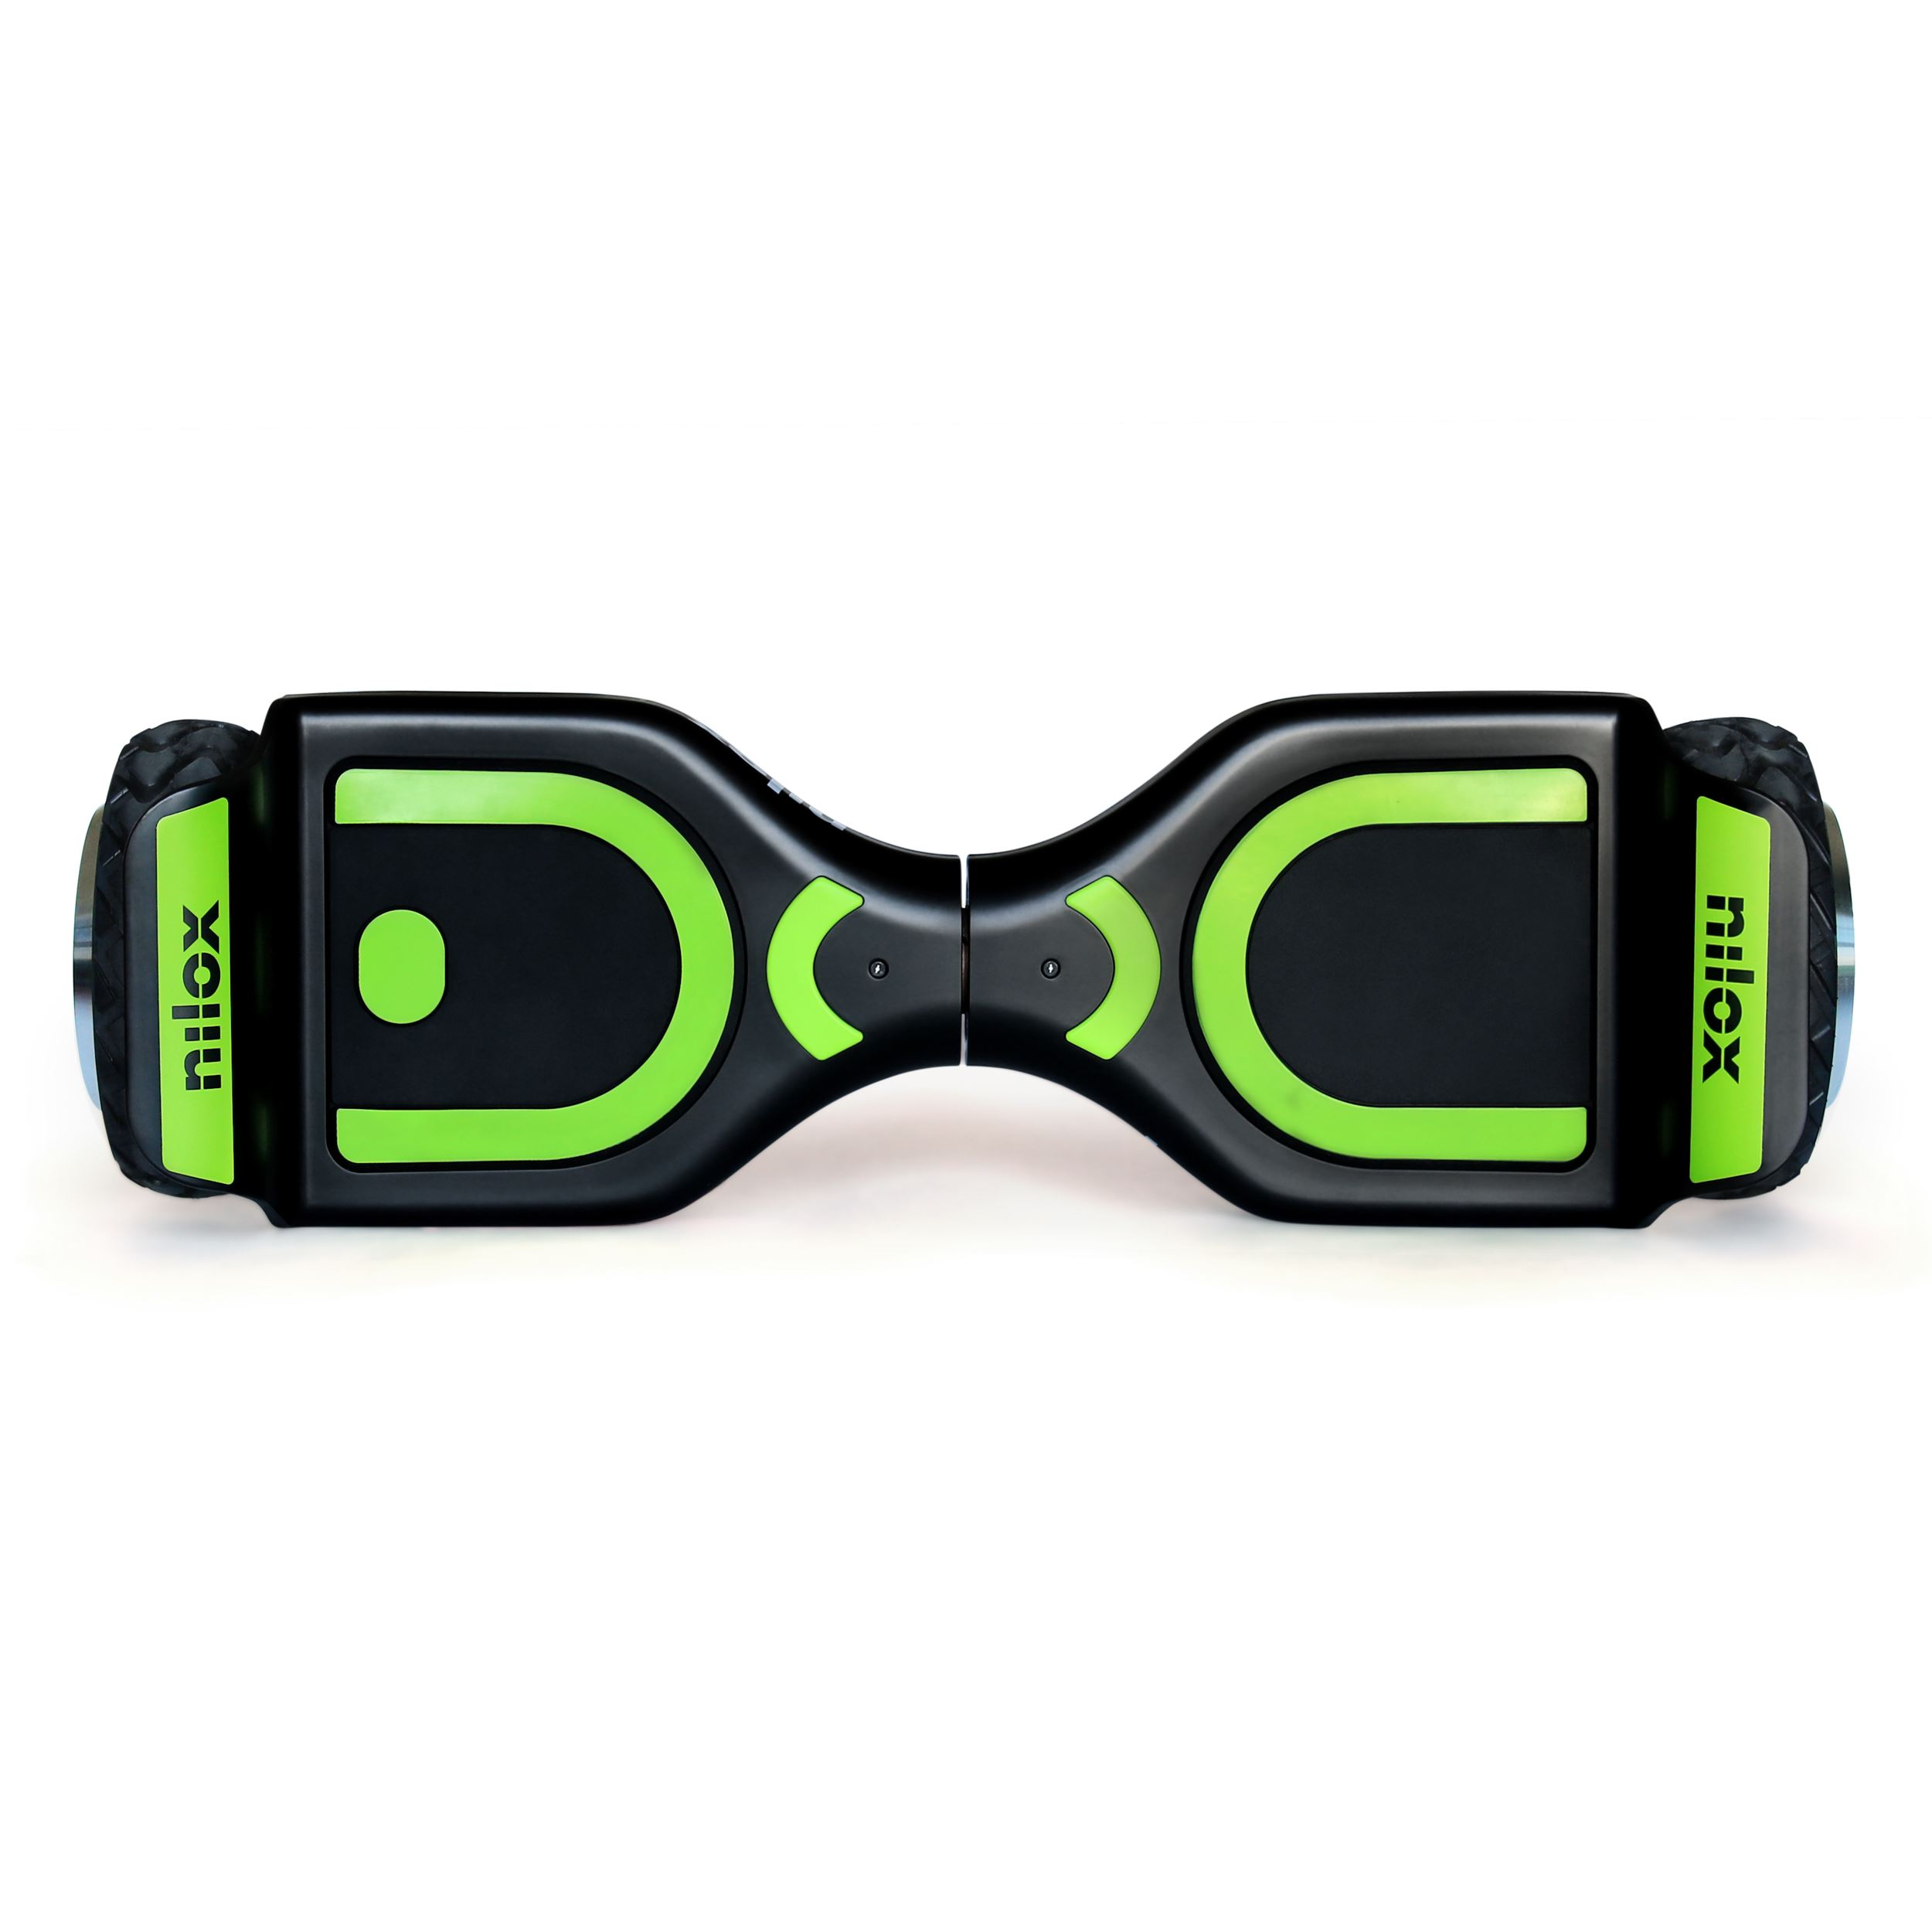 doc-2-hoverboard-black-30nxbk65nwn01-505122-hd.jpg